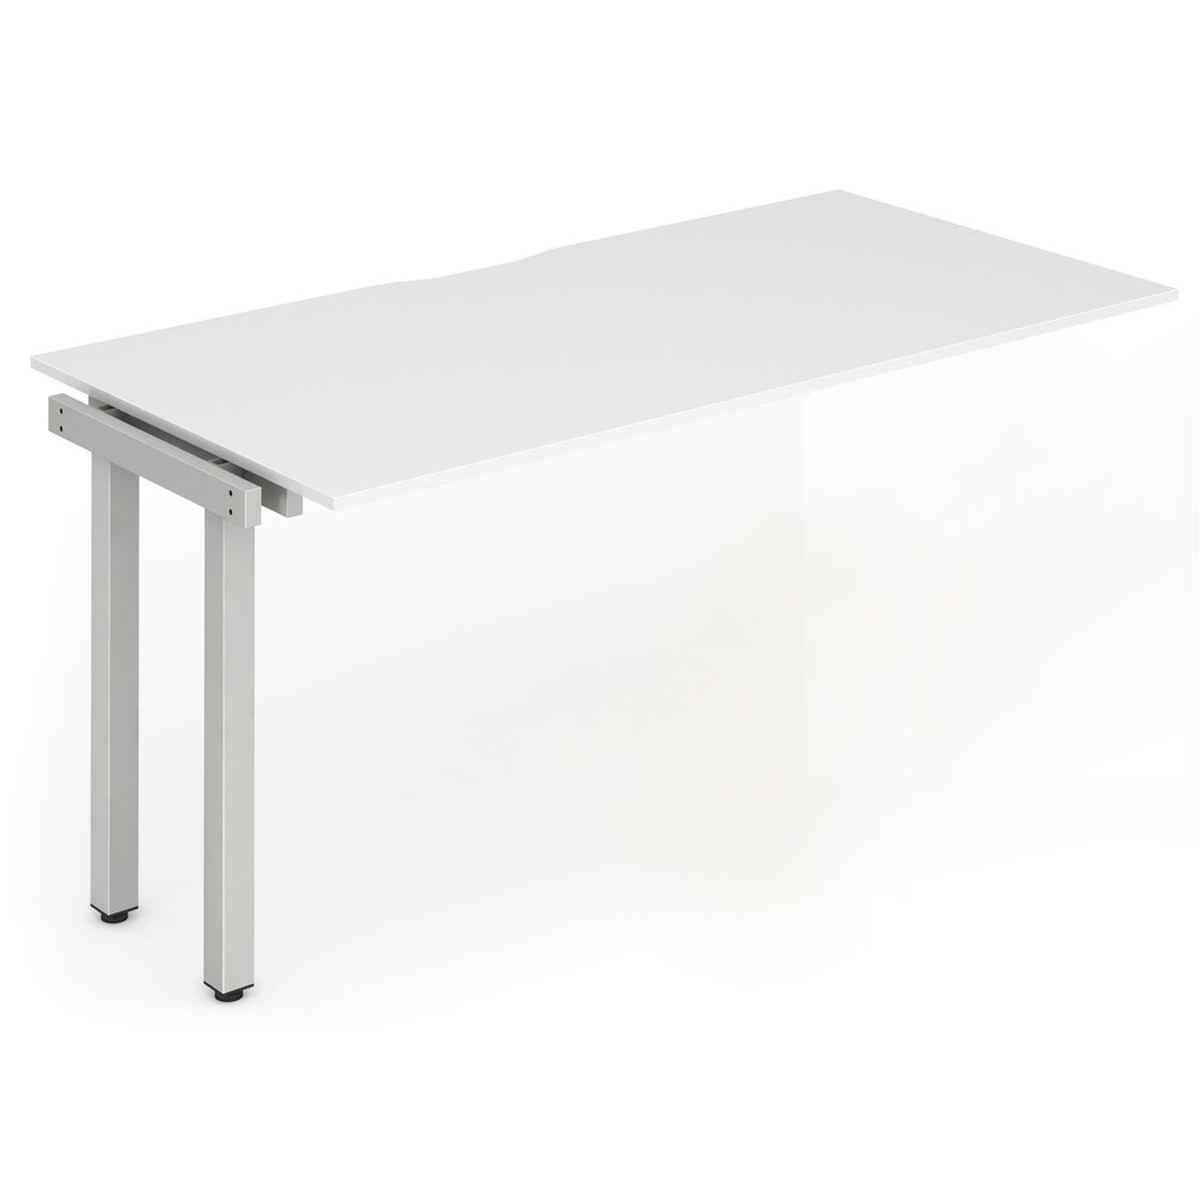 Trexus Bench Desk Single Extension Silver Leg 1200x800mm White Ref BE340